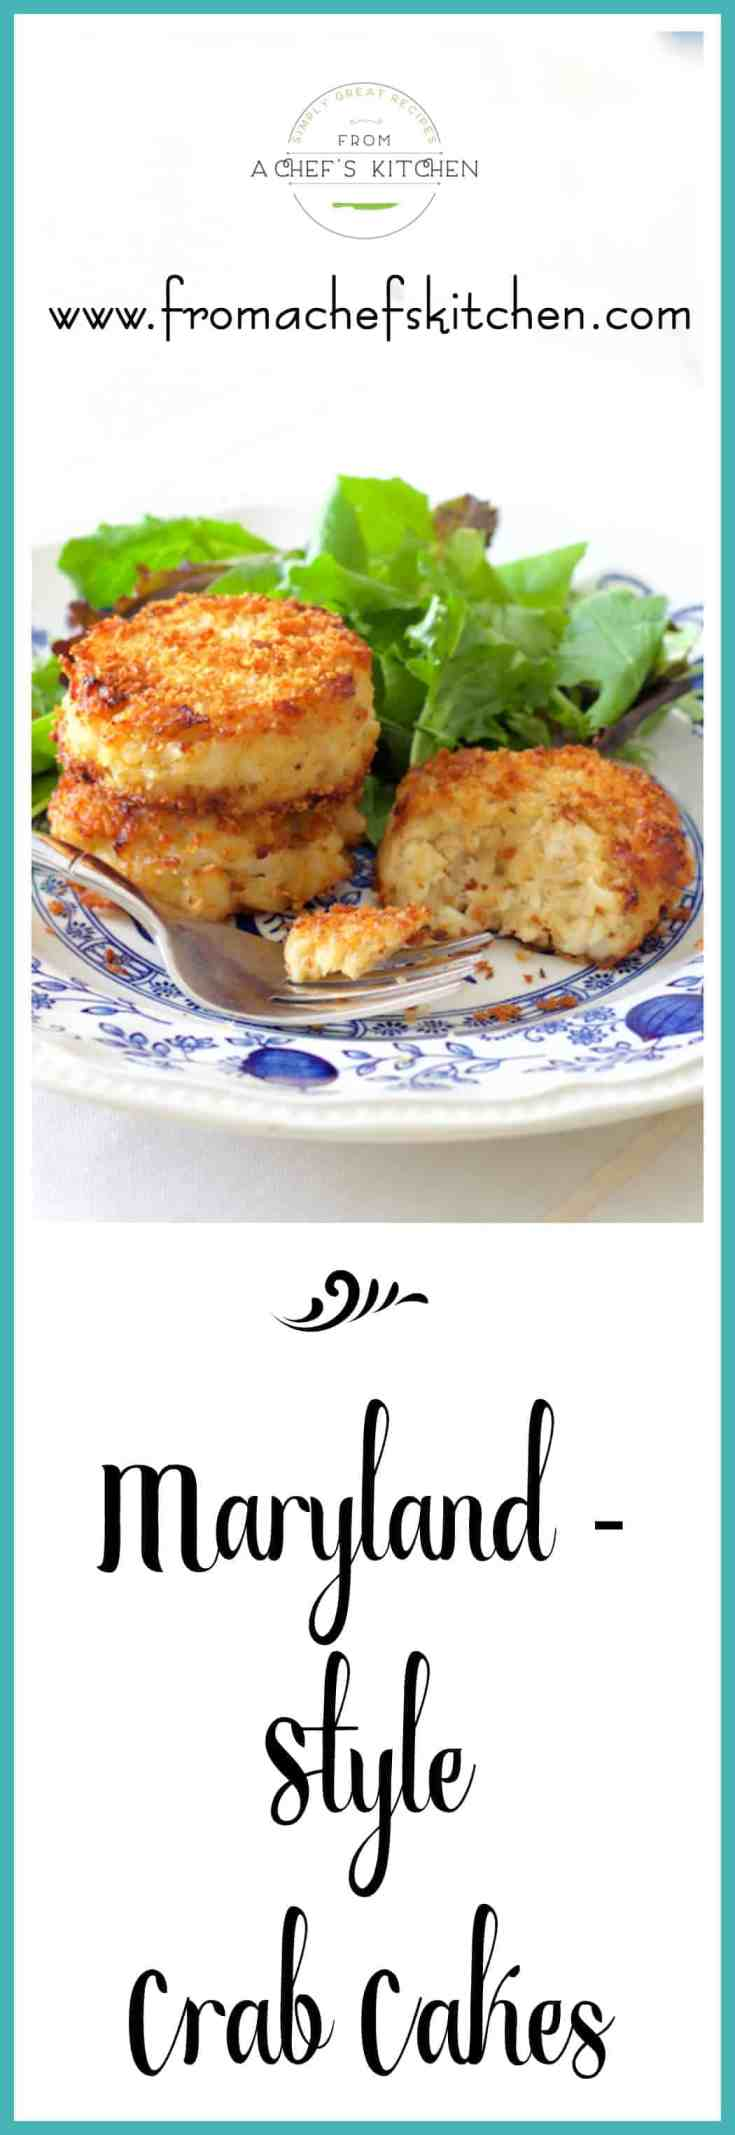 Maryland-Style Crab Cakes are from a recipe handed down several generations so they're the REAL DEAL! #crab #crabcakes #marylandcrabcakes #fish #seafood #seafoodrecipes